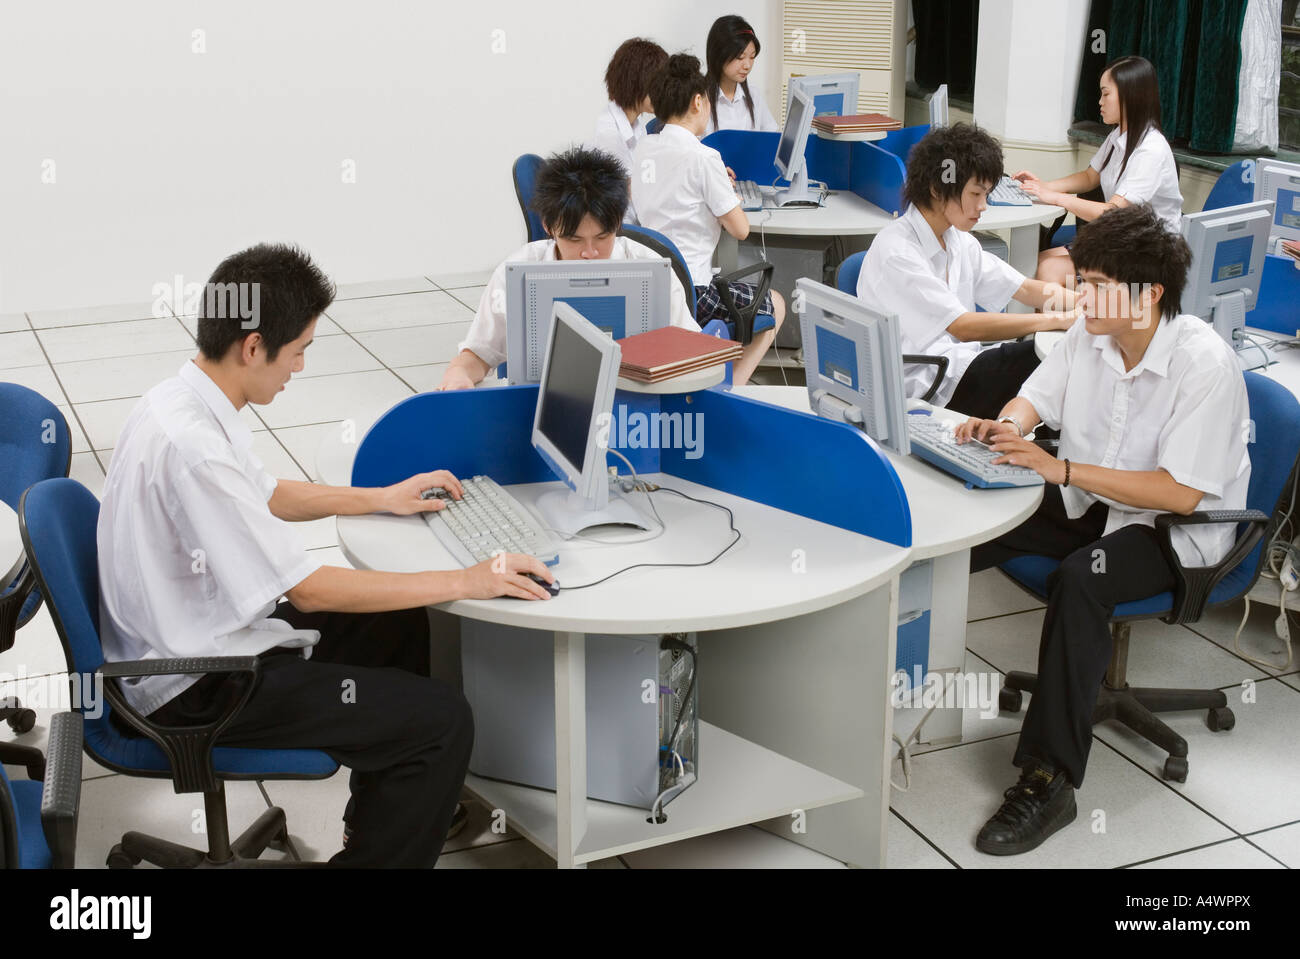 Students working in computer lab - Stock Image